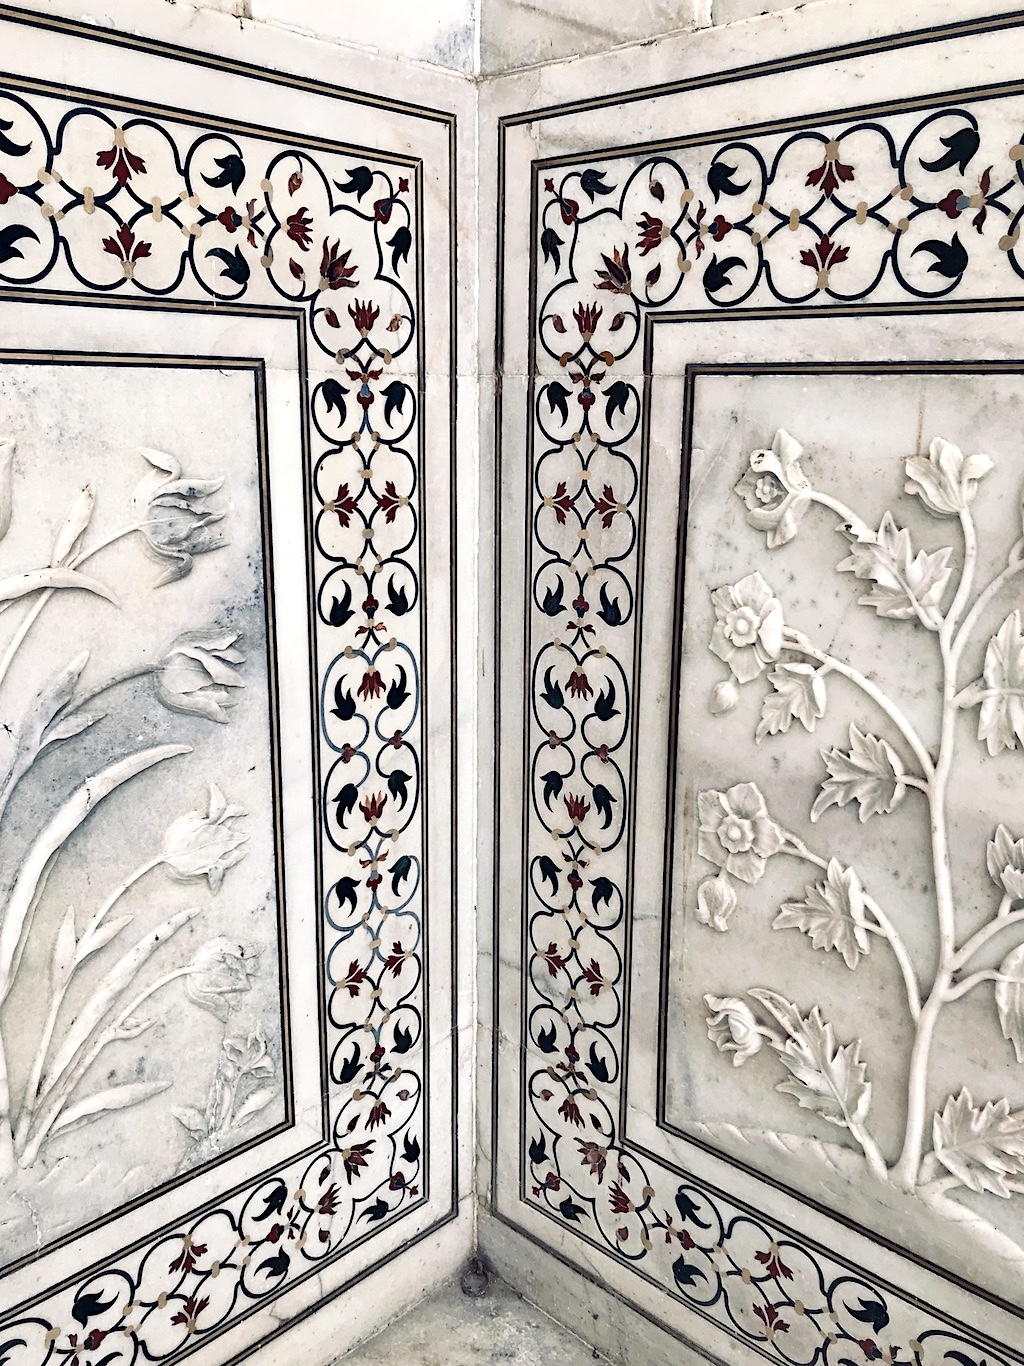 Some of the engravings in the marble